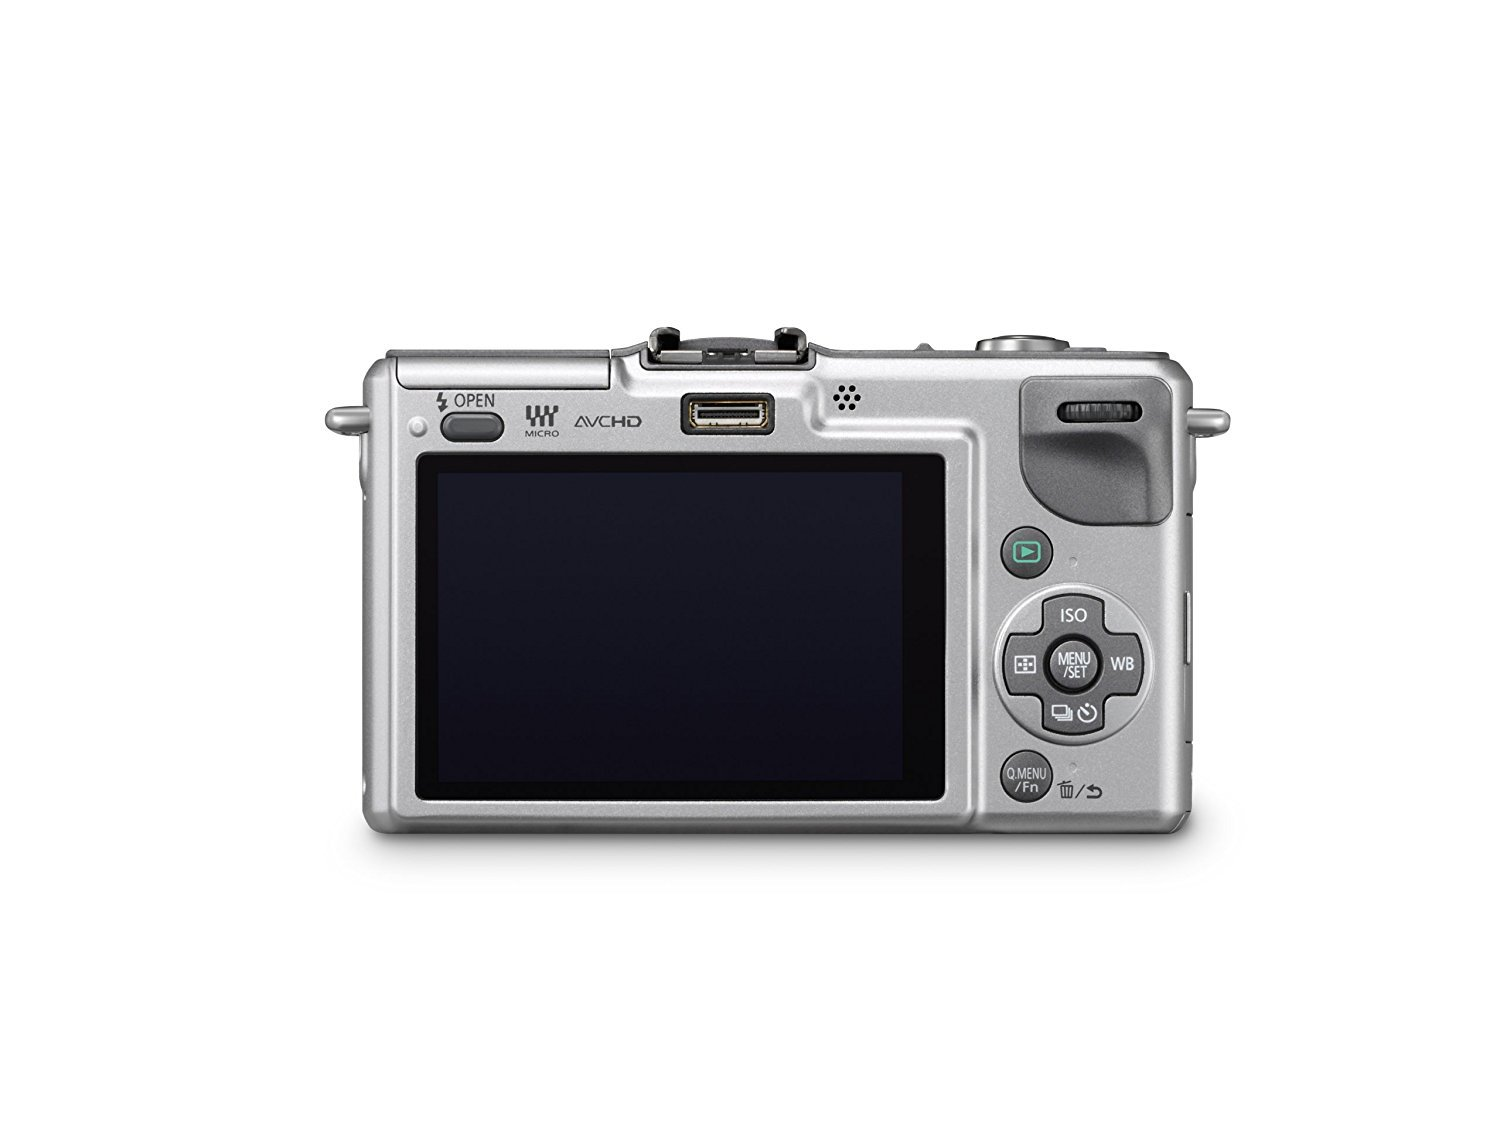 Panasonic Lumix DMC-GF2 Digital Micro Four Thirds Camera Body (International Model No Warranty) (Silver) by Panasonic